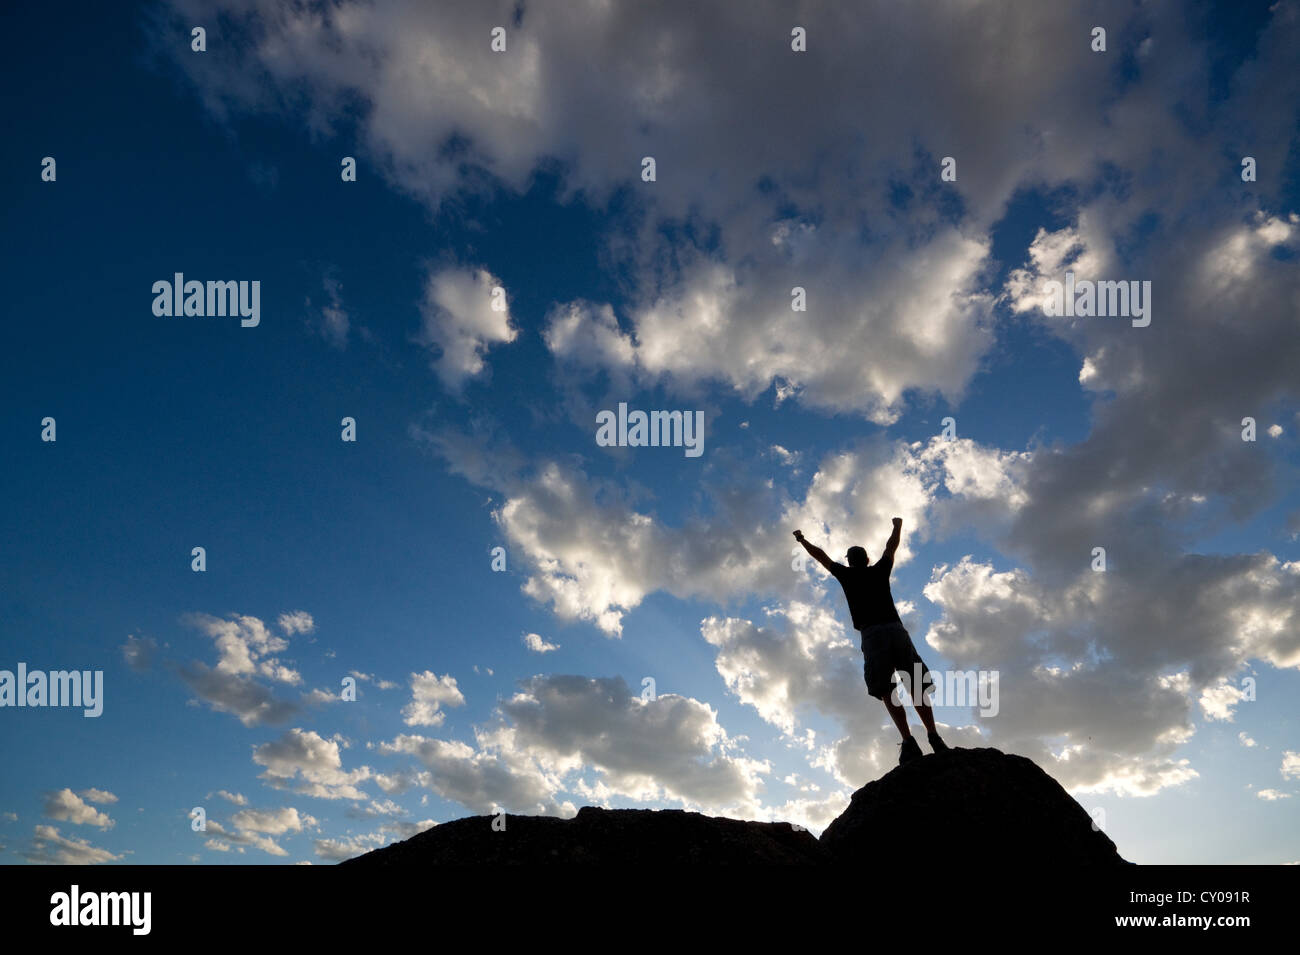 Silhouette of male figure standing on rock in celebration with arms raised - Stock Image